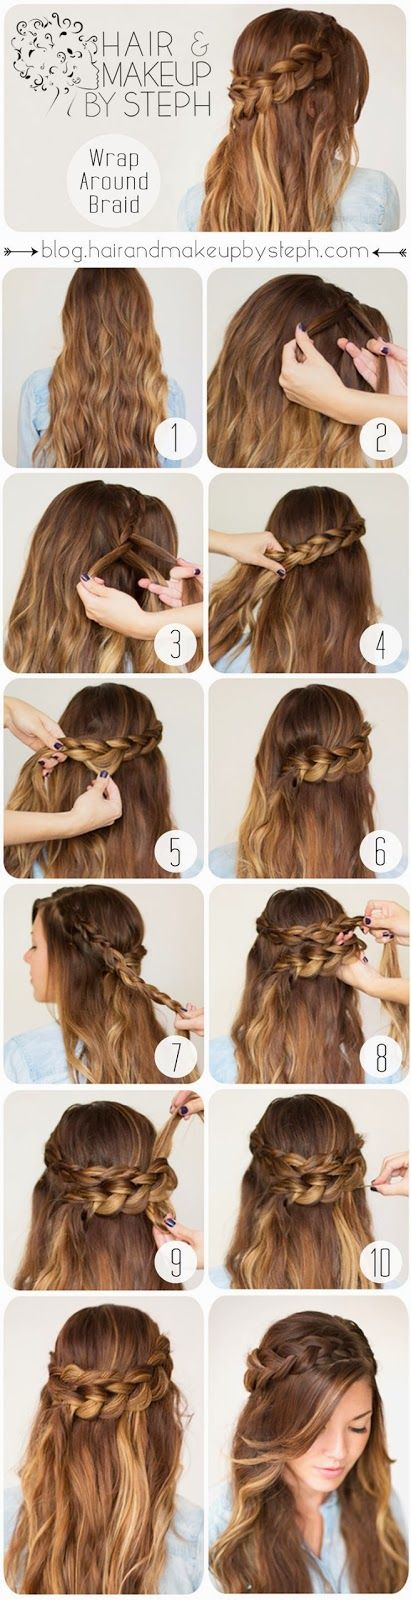 How To Do a Wrap Around Braid